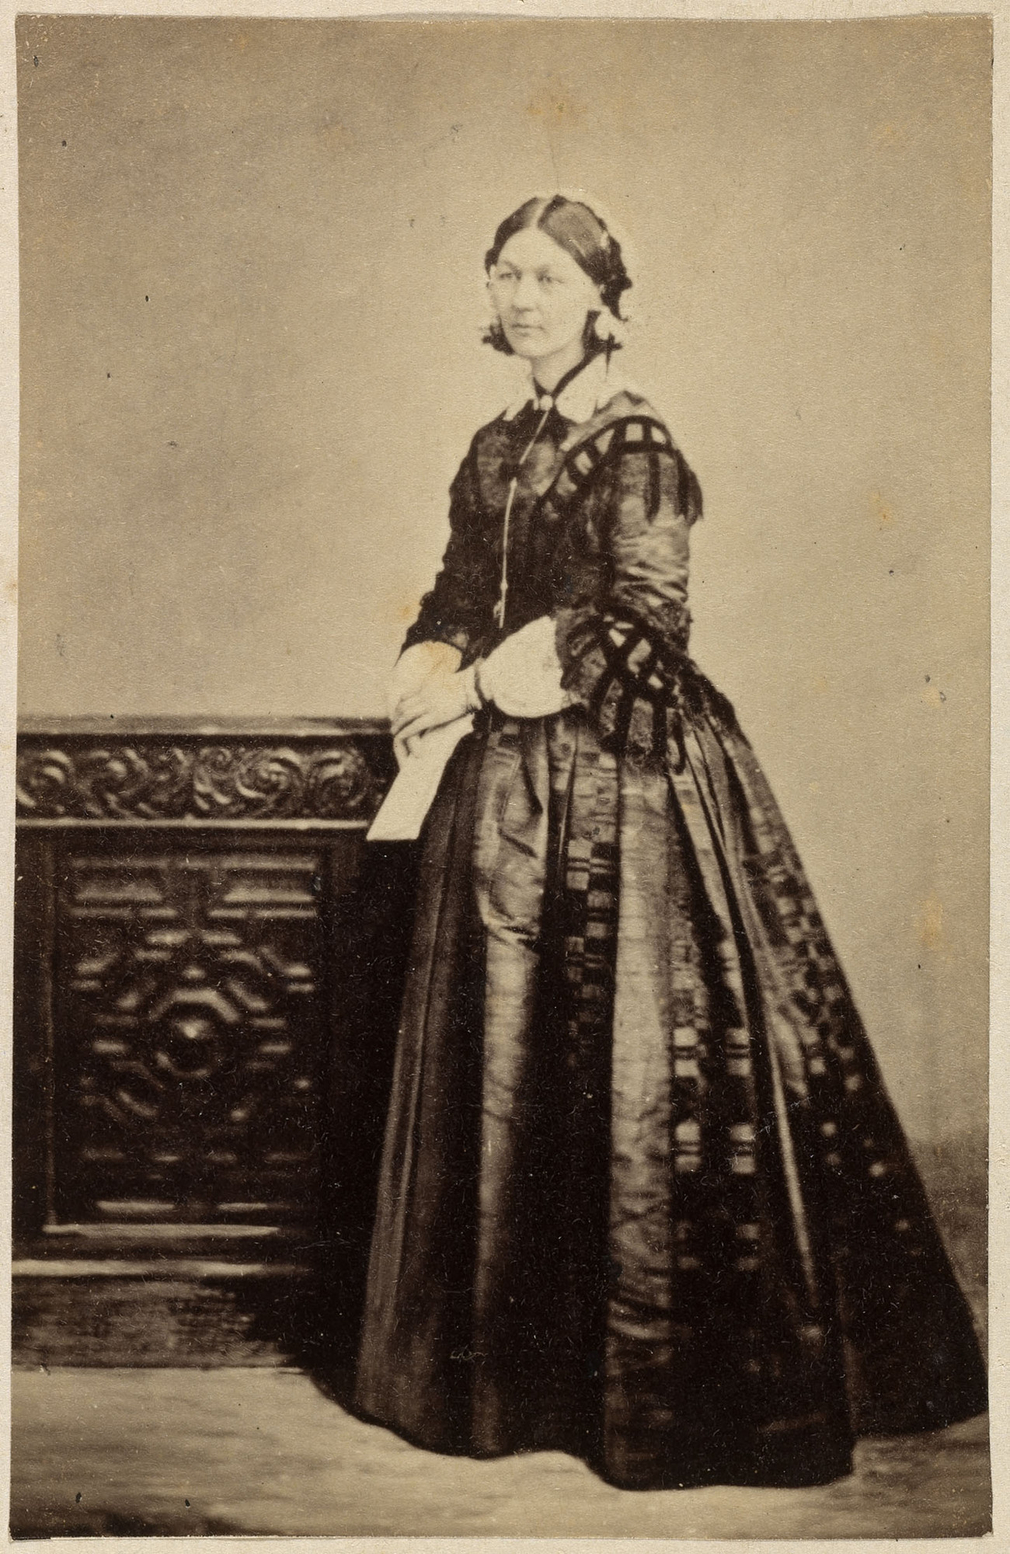 Carte-de-visite of Florence Nightingale standing facing partly left holding a letter. An engraved wooden chest stands to the left.Queen Victoria admired the work done by Florence Nightingale to improve nursing during the Crimean War, noting in her journal